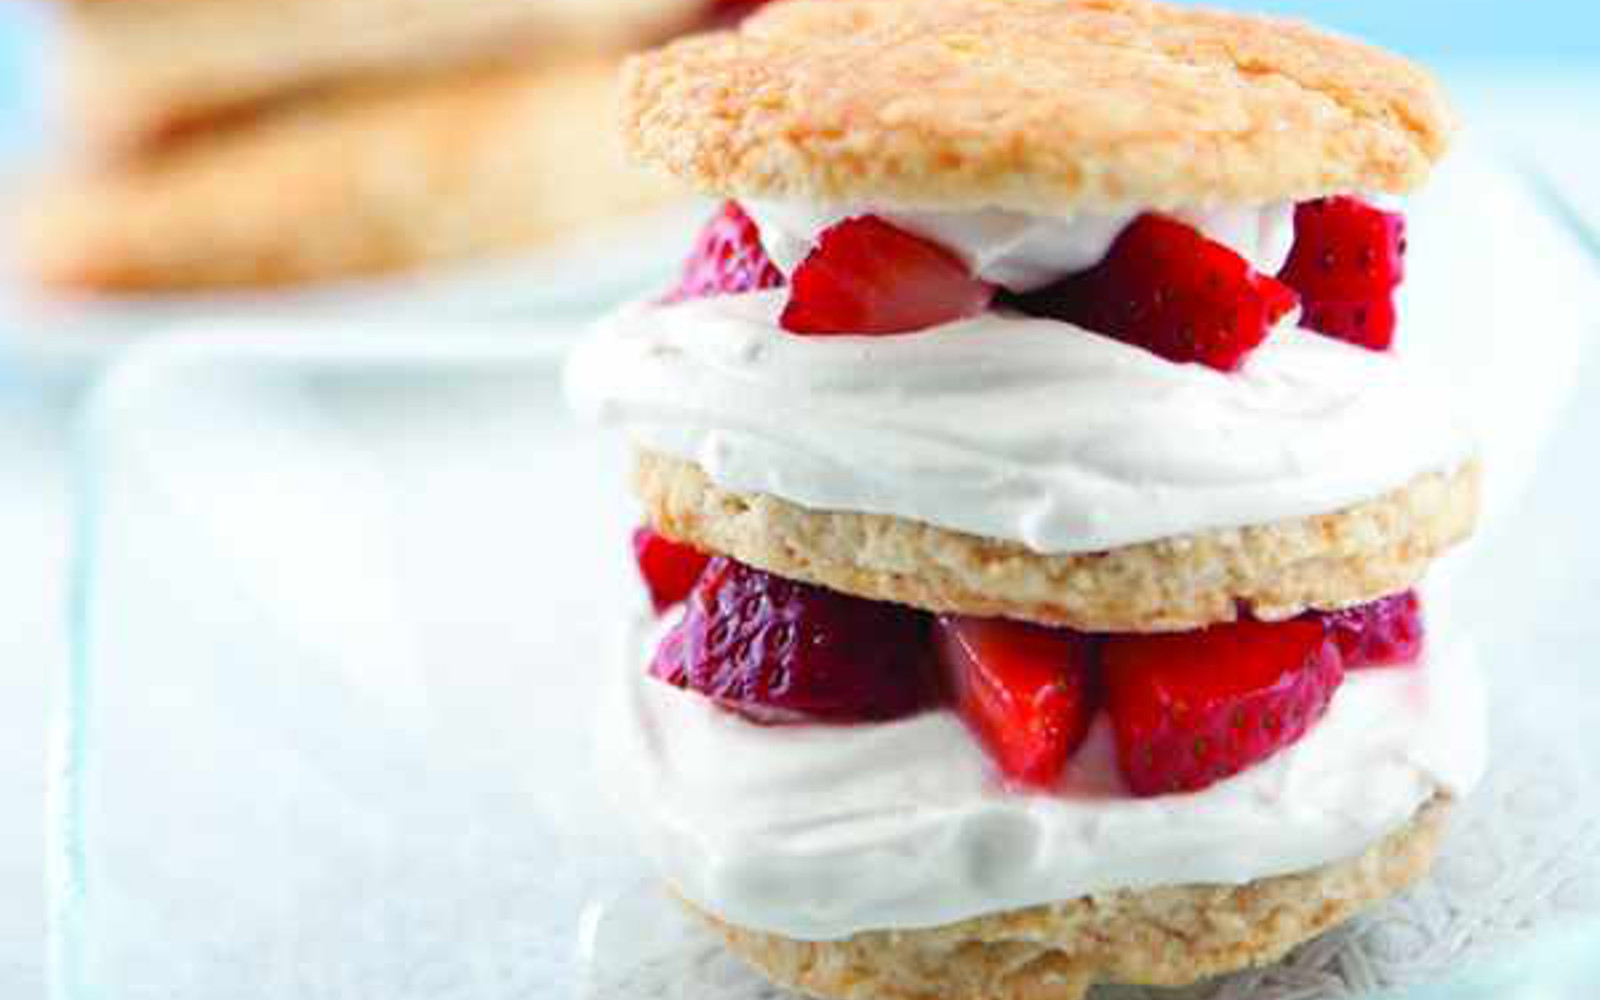 strawberry shortcake with coconut whipped cream